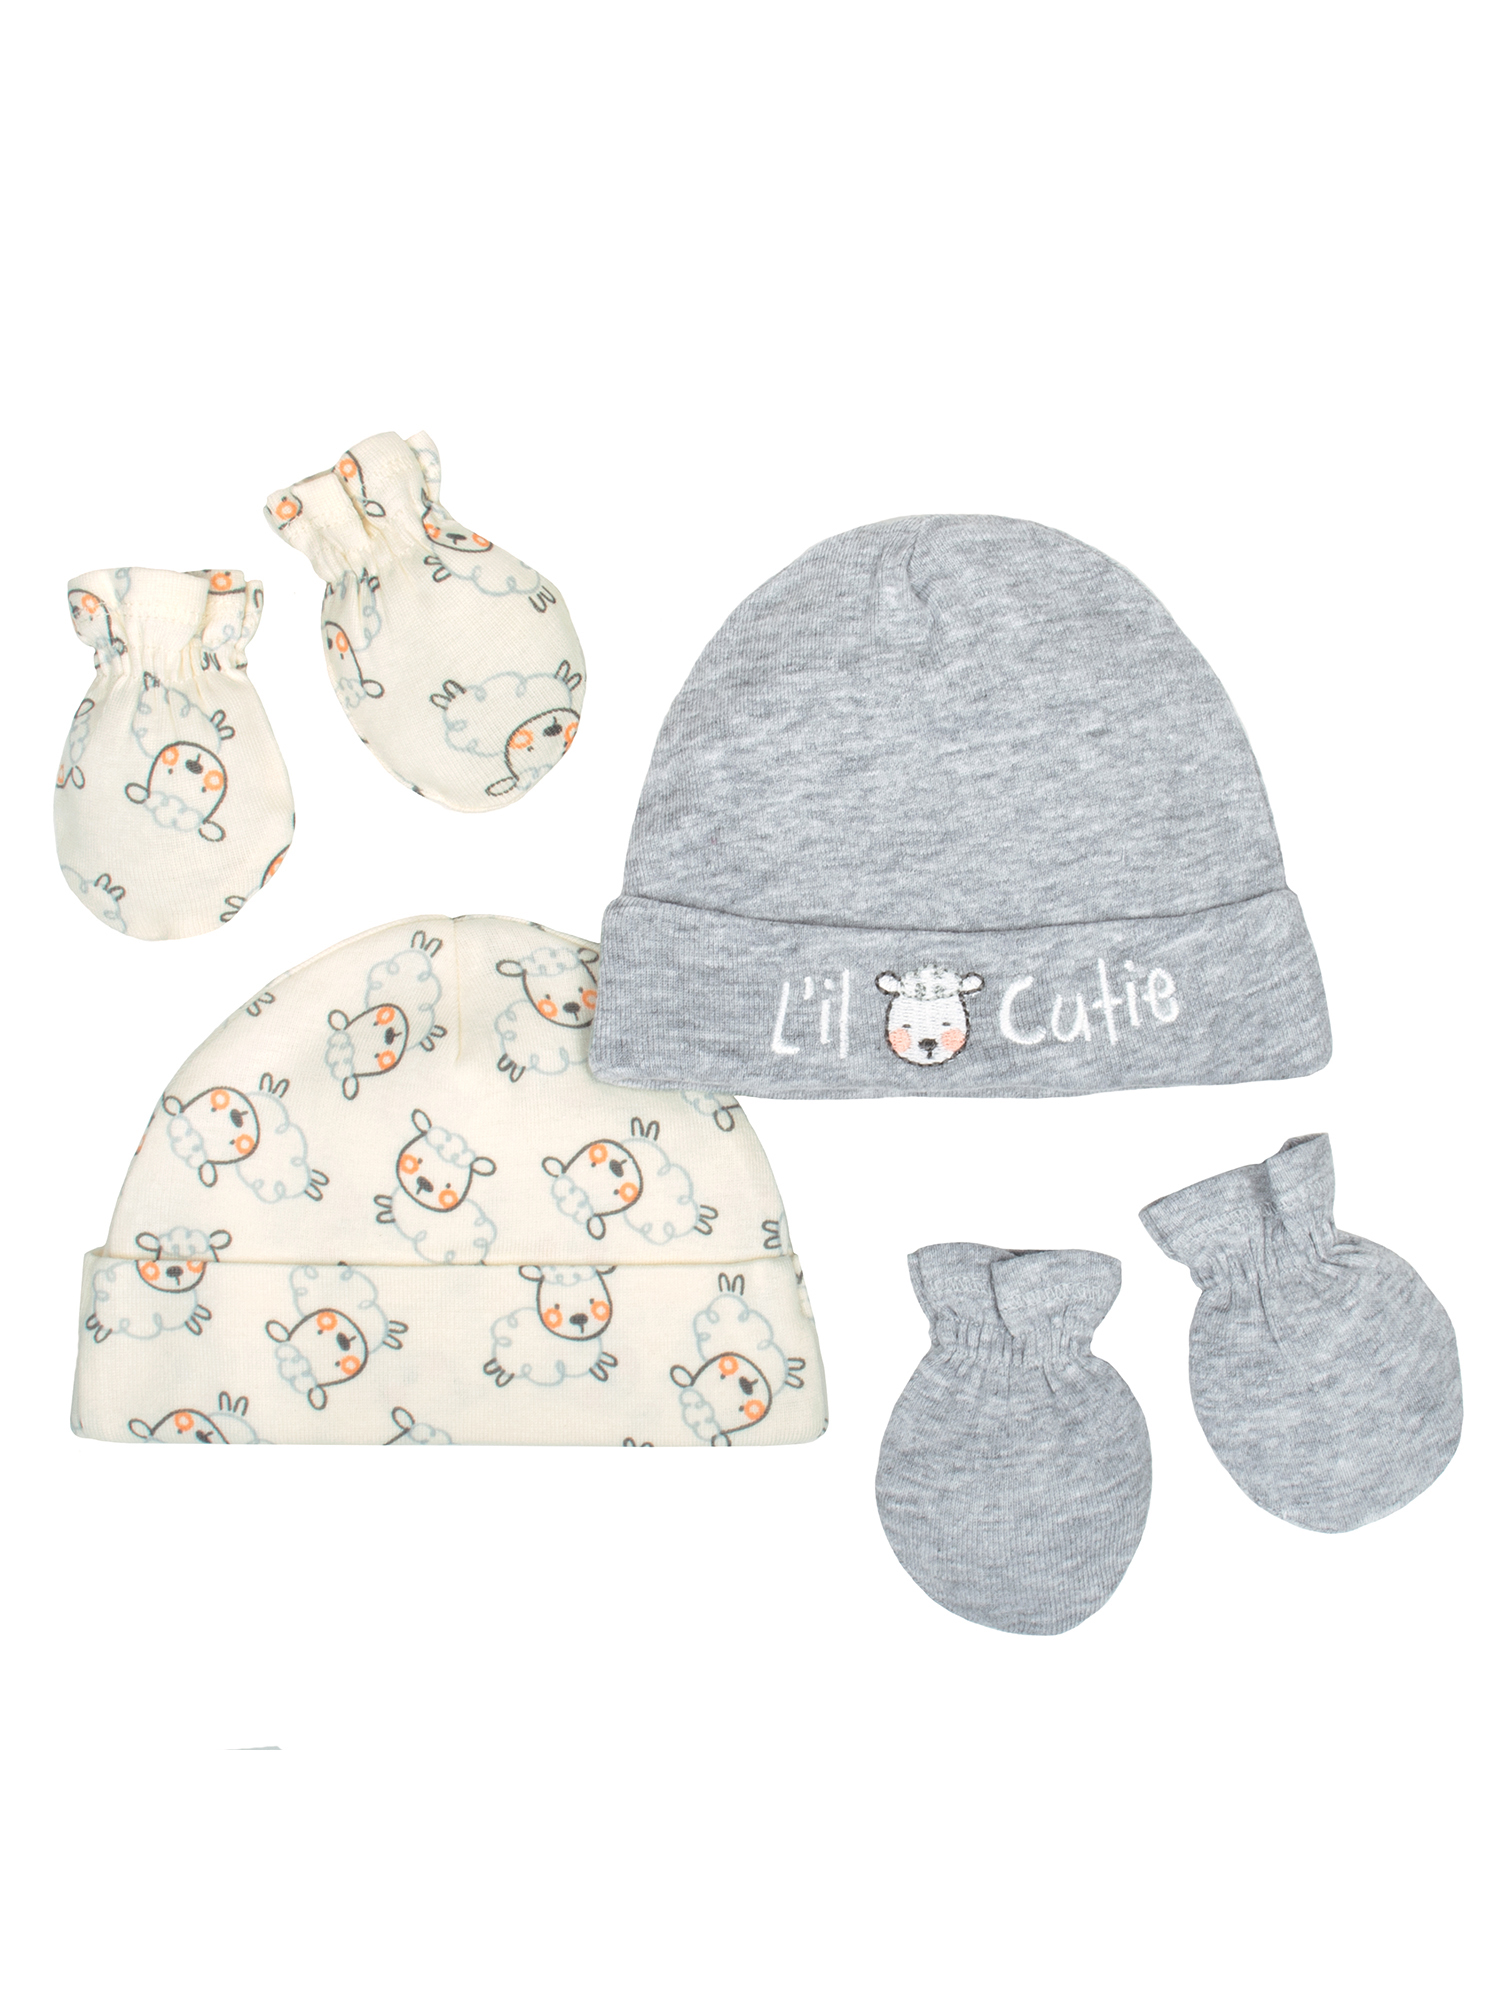 Newborn Baby Boy or Girl Unisex Organic Cap and Mittens Set, 4pc